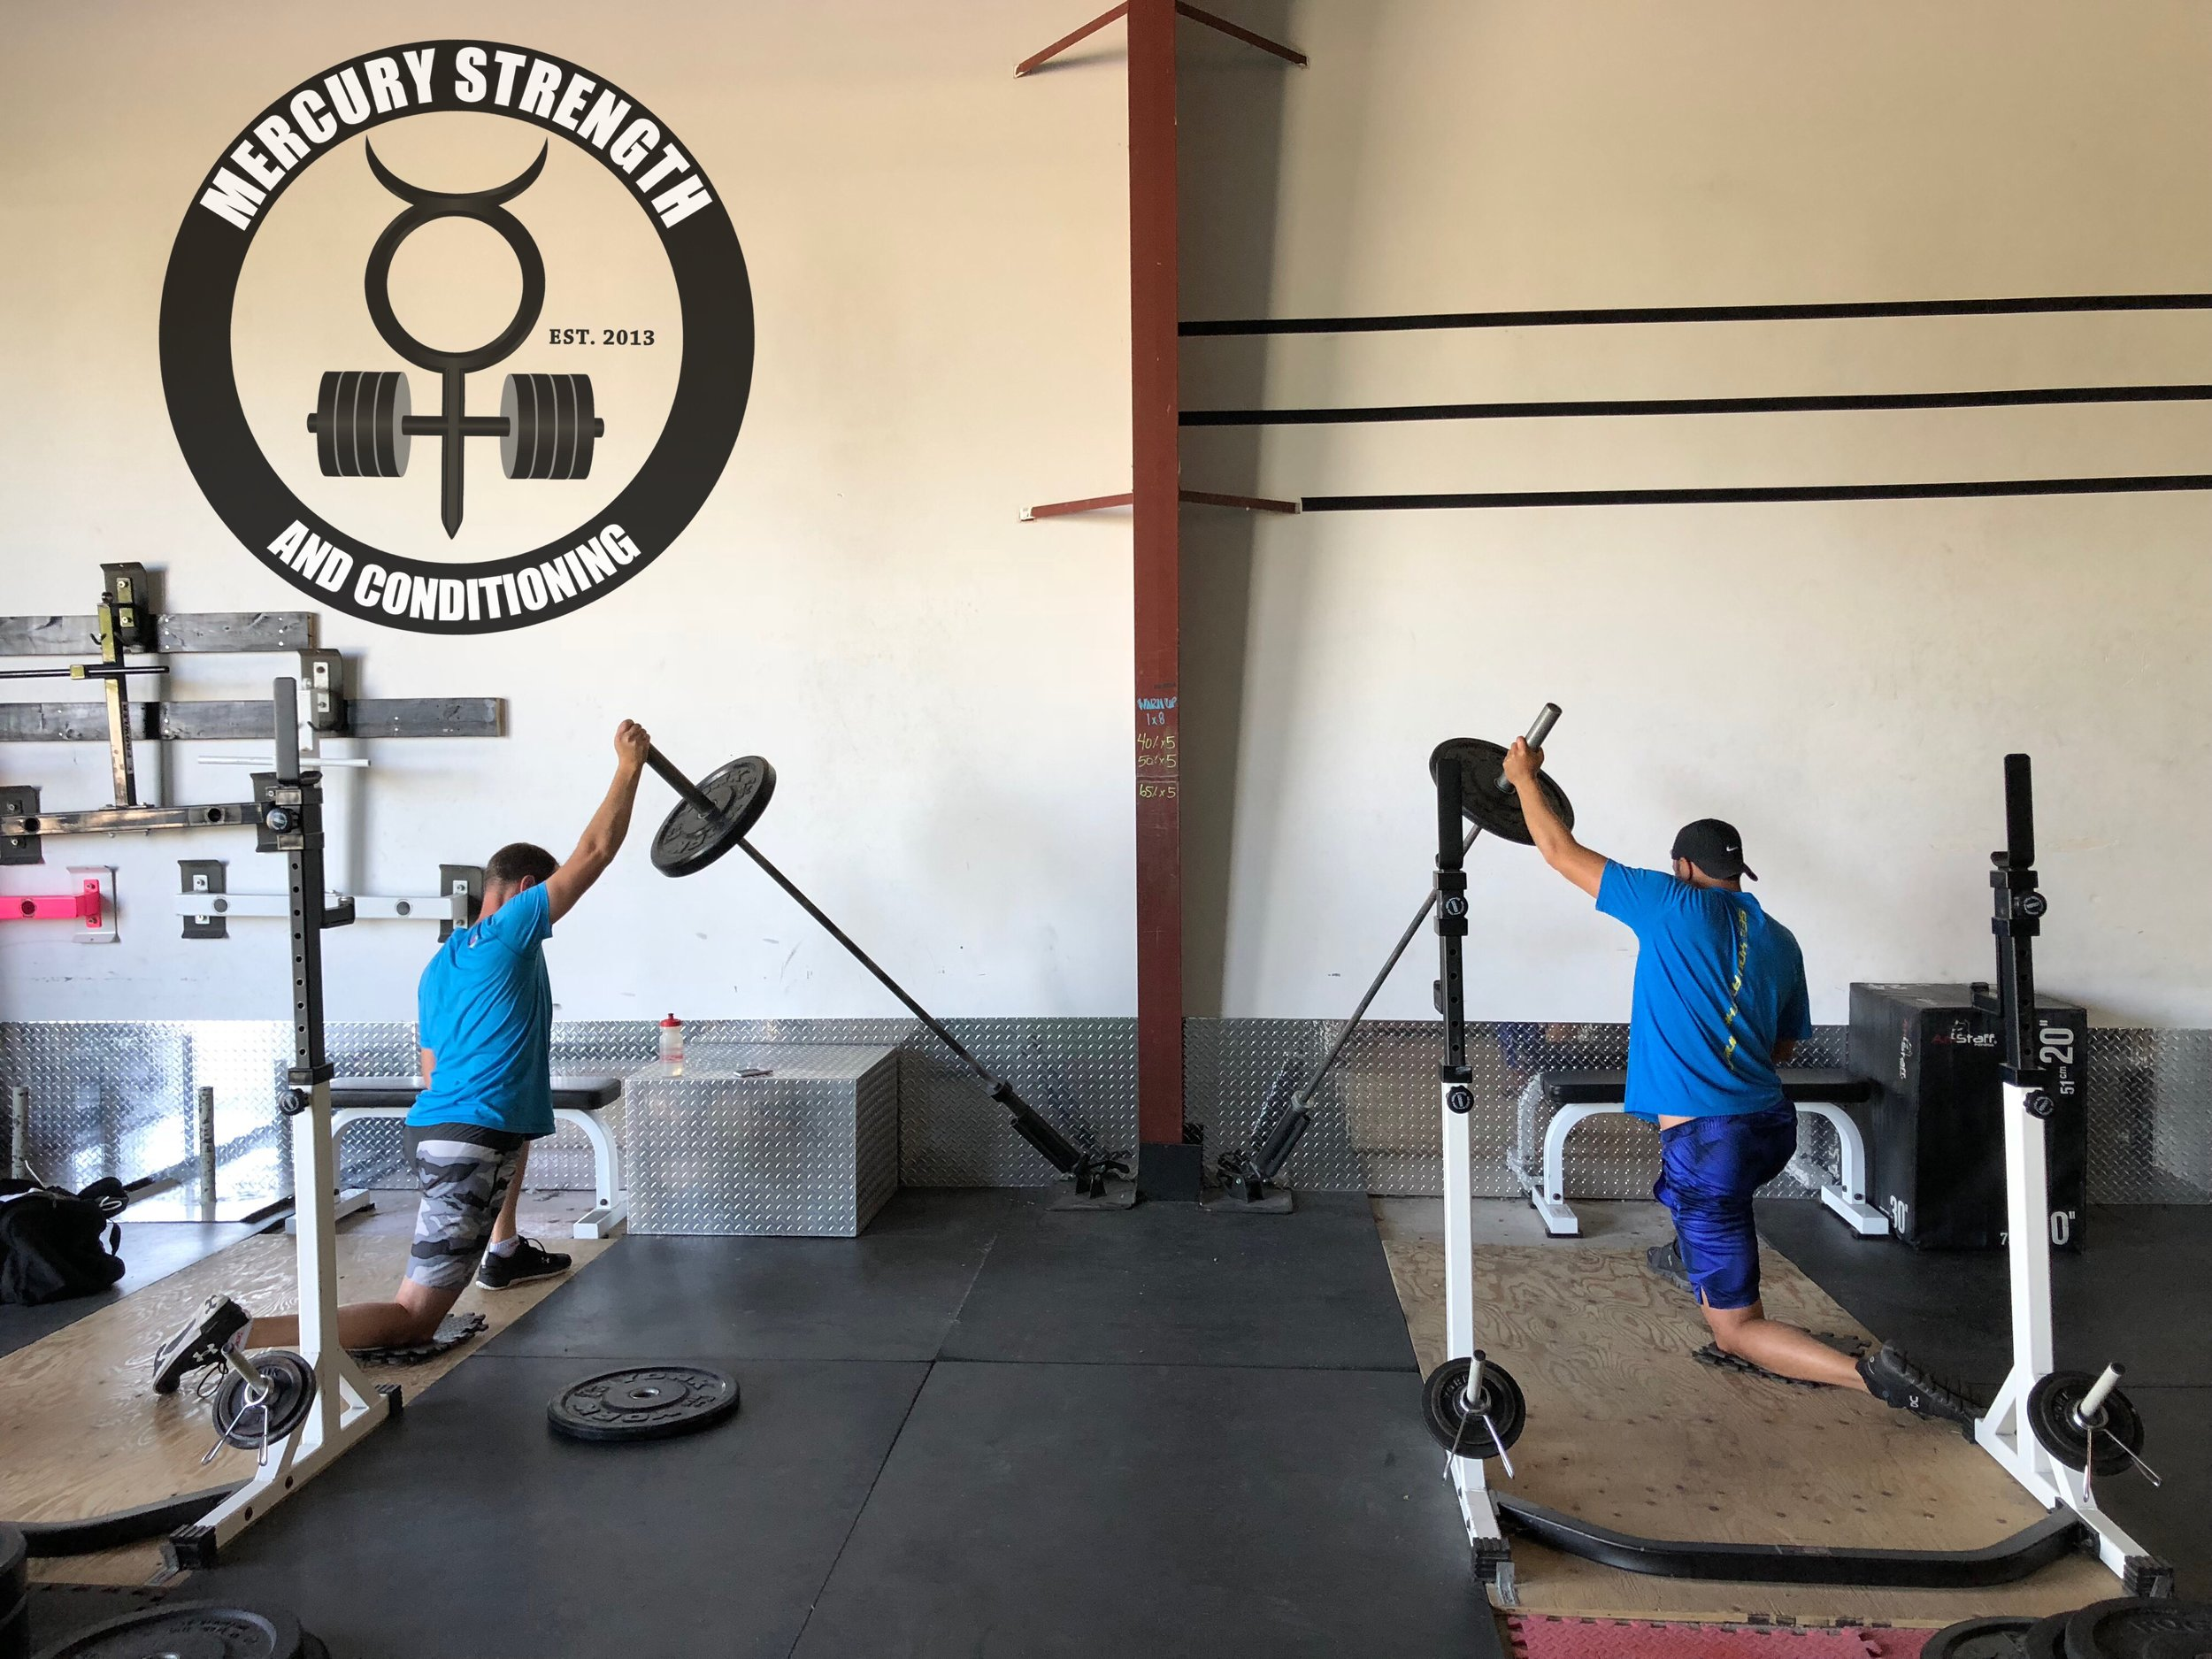 Andrew and Michael cranking out some very tough half kneeling landmine presses